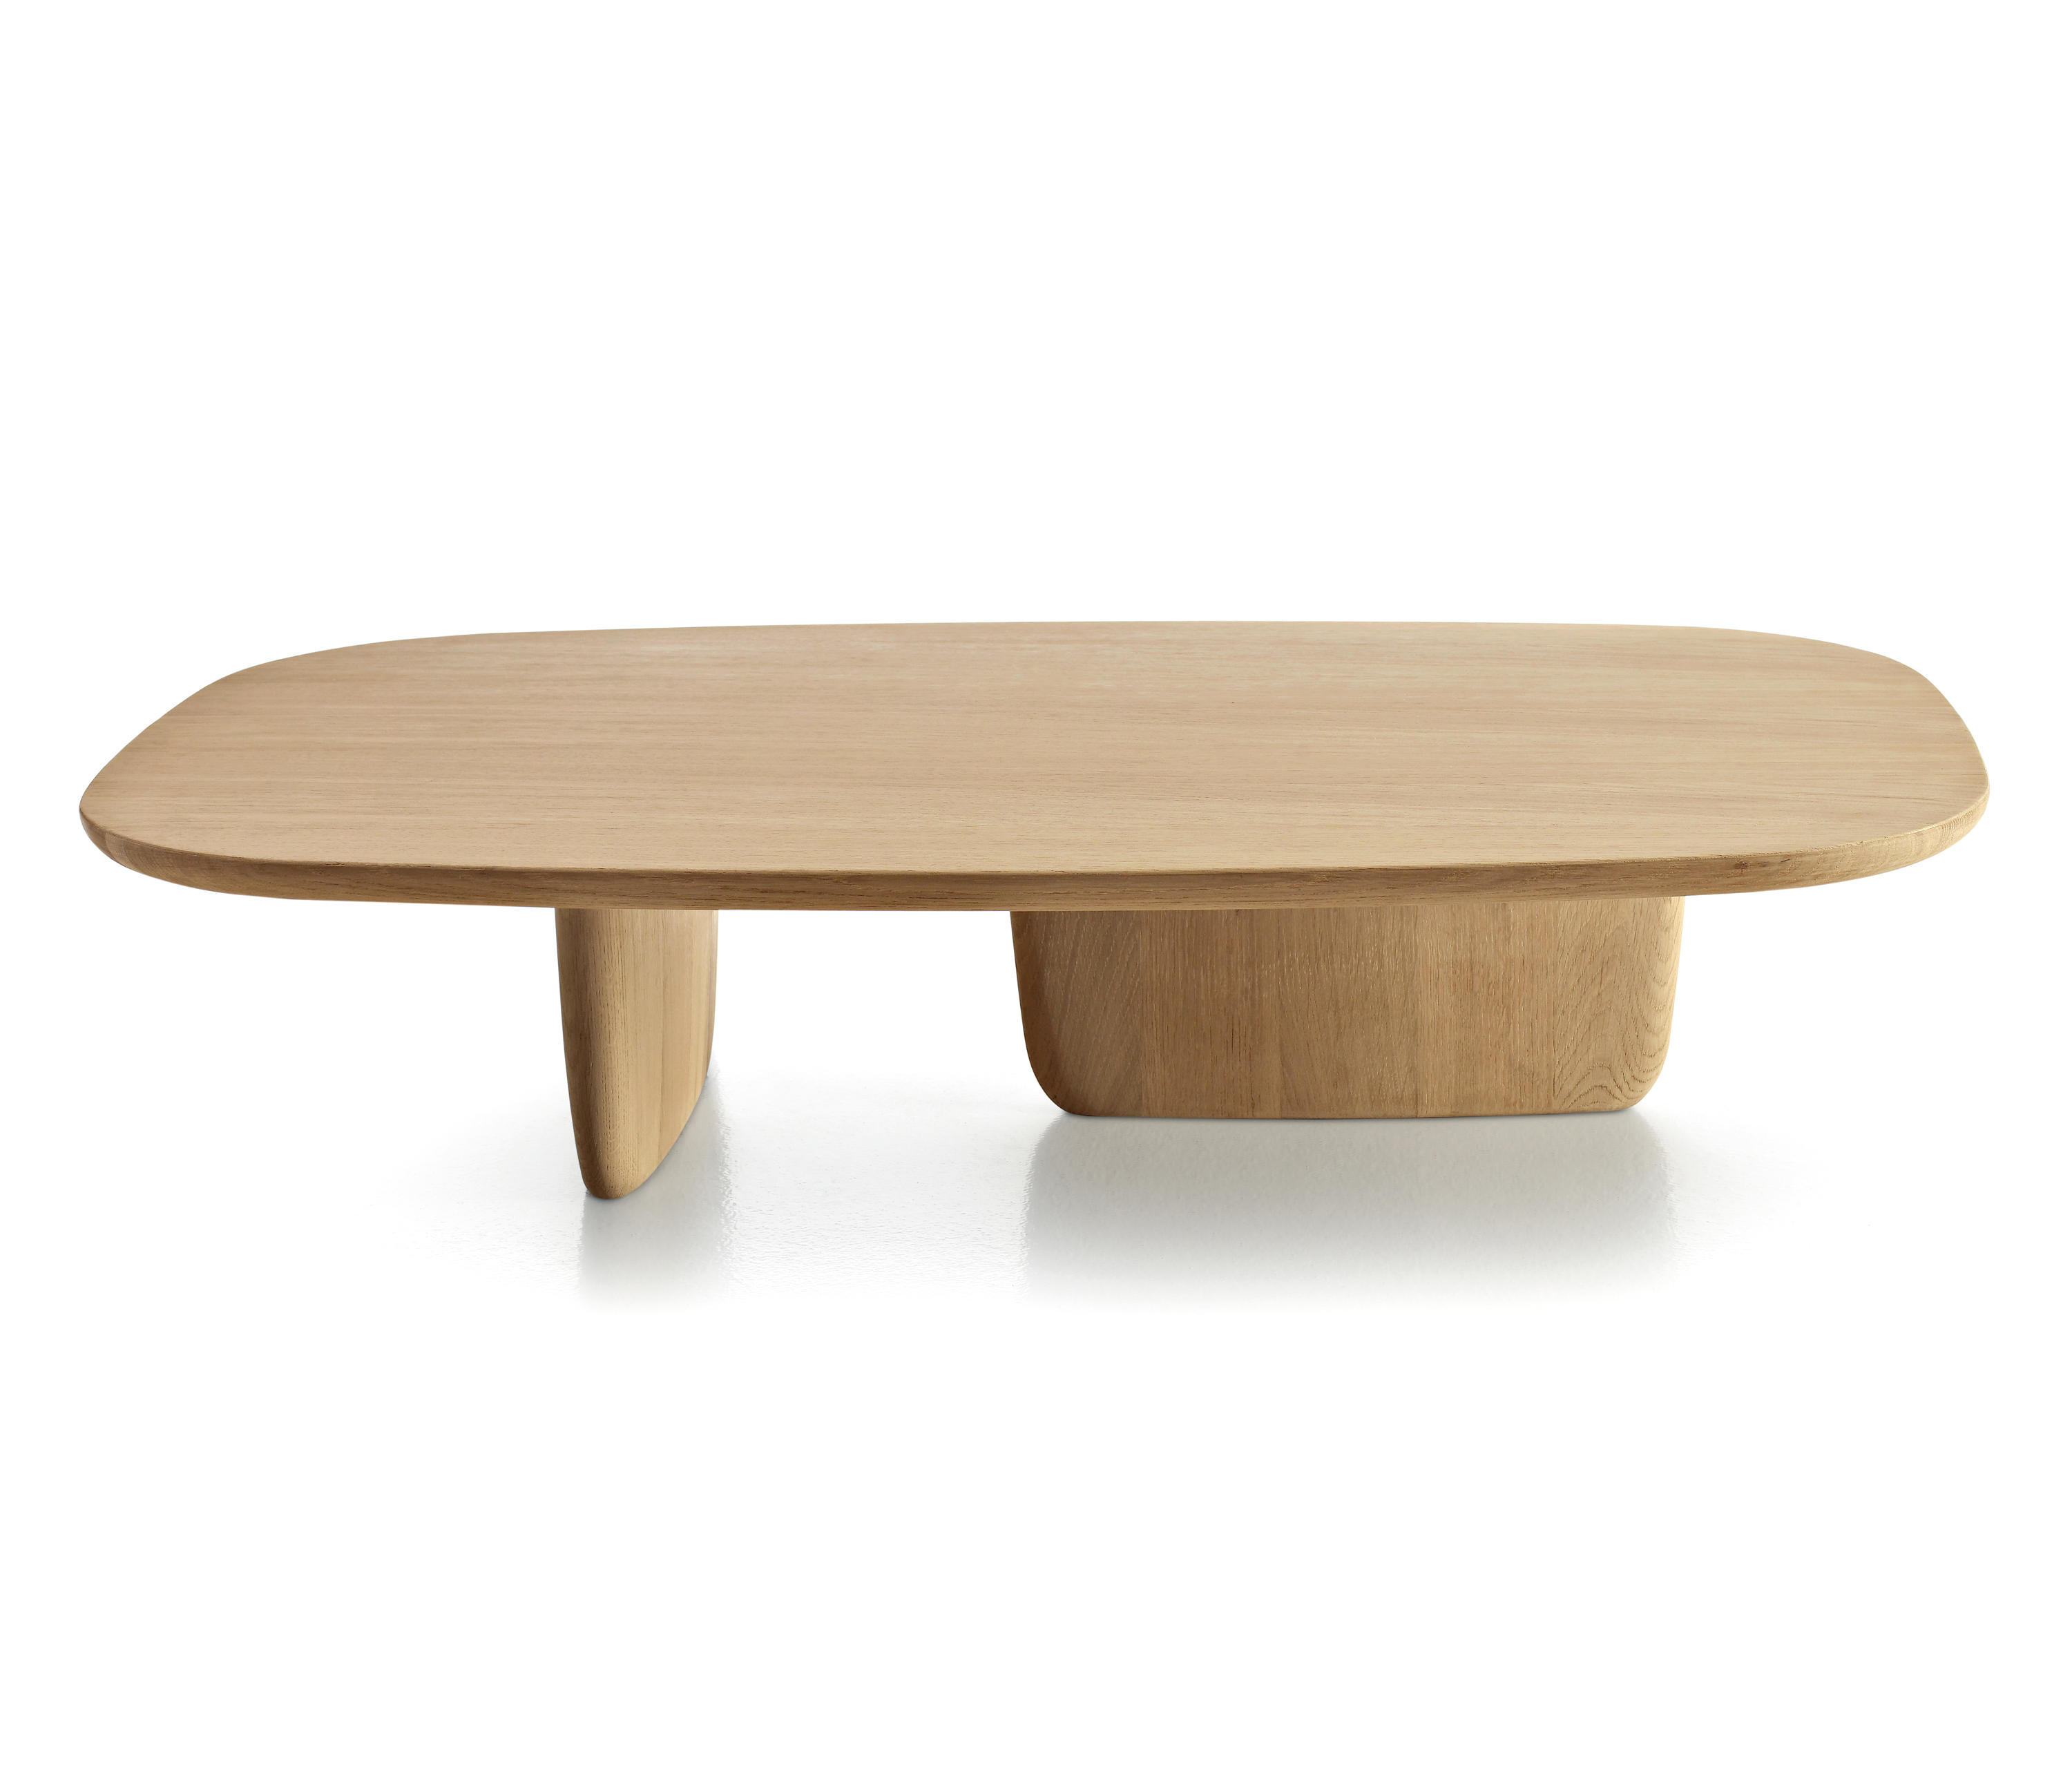 TOBI ISHI Lounge tables from B&B Italia